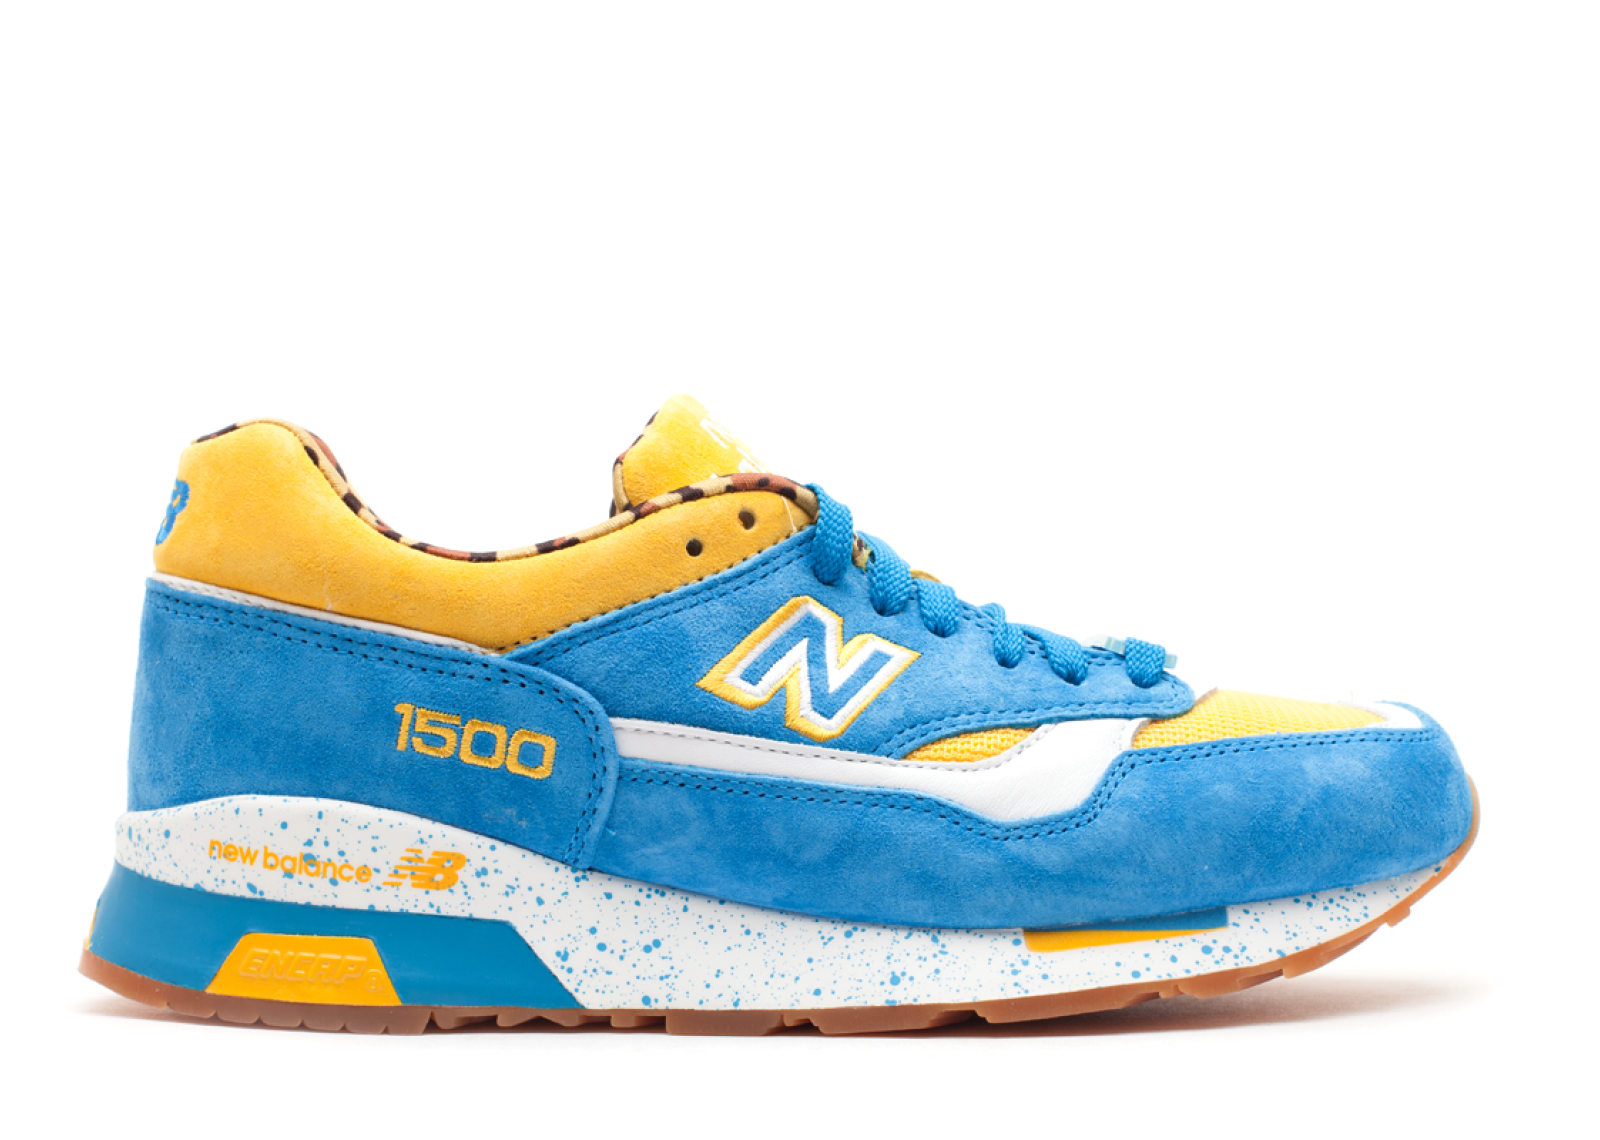 New Balance Cm1500 Undefeated X Colette X Lamjc Yellow Blue White 300356 1